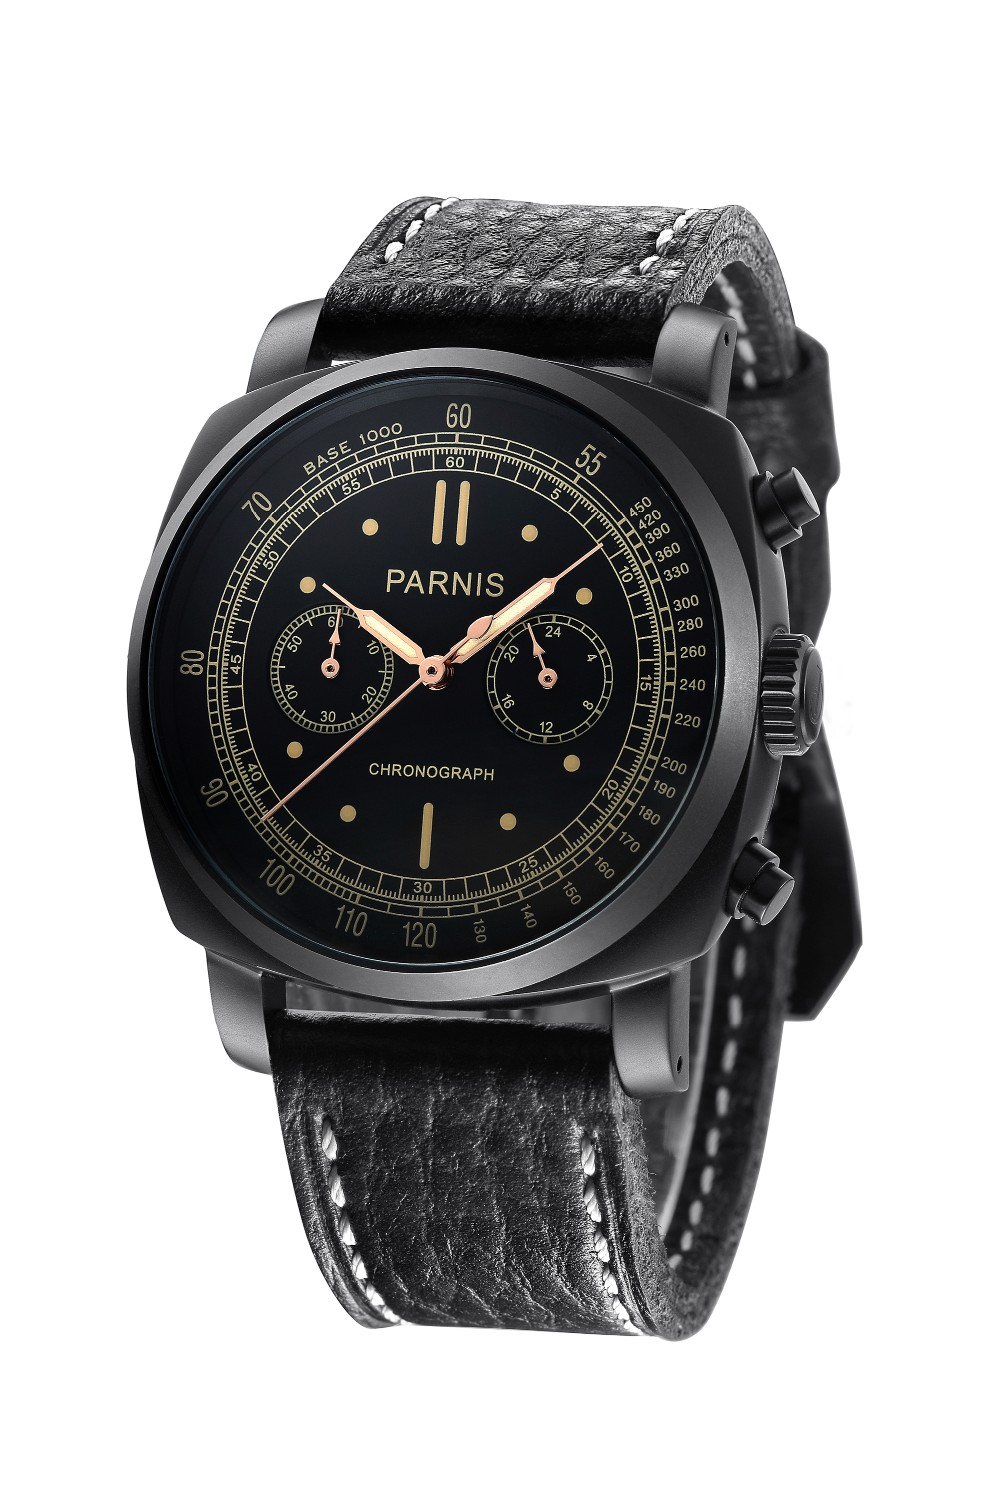 Parnis 45mm Black Dial PVD Case Chronograph Men's Watch